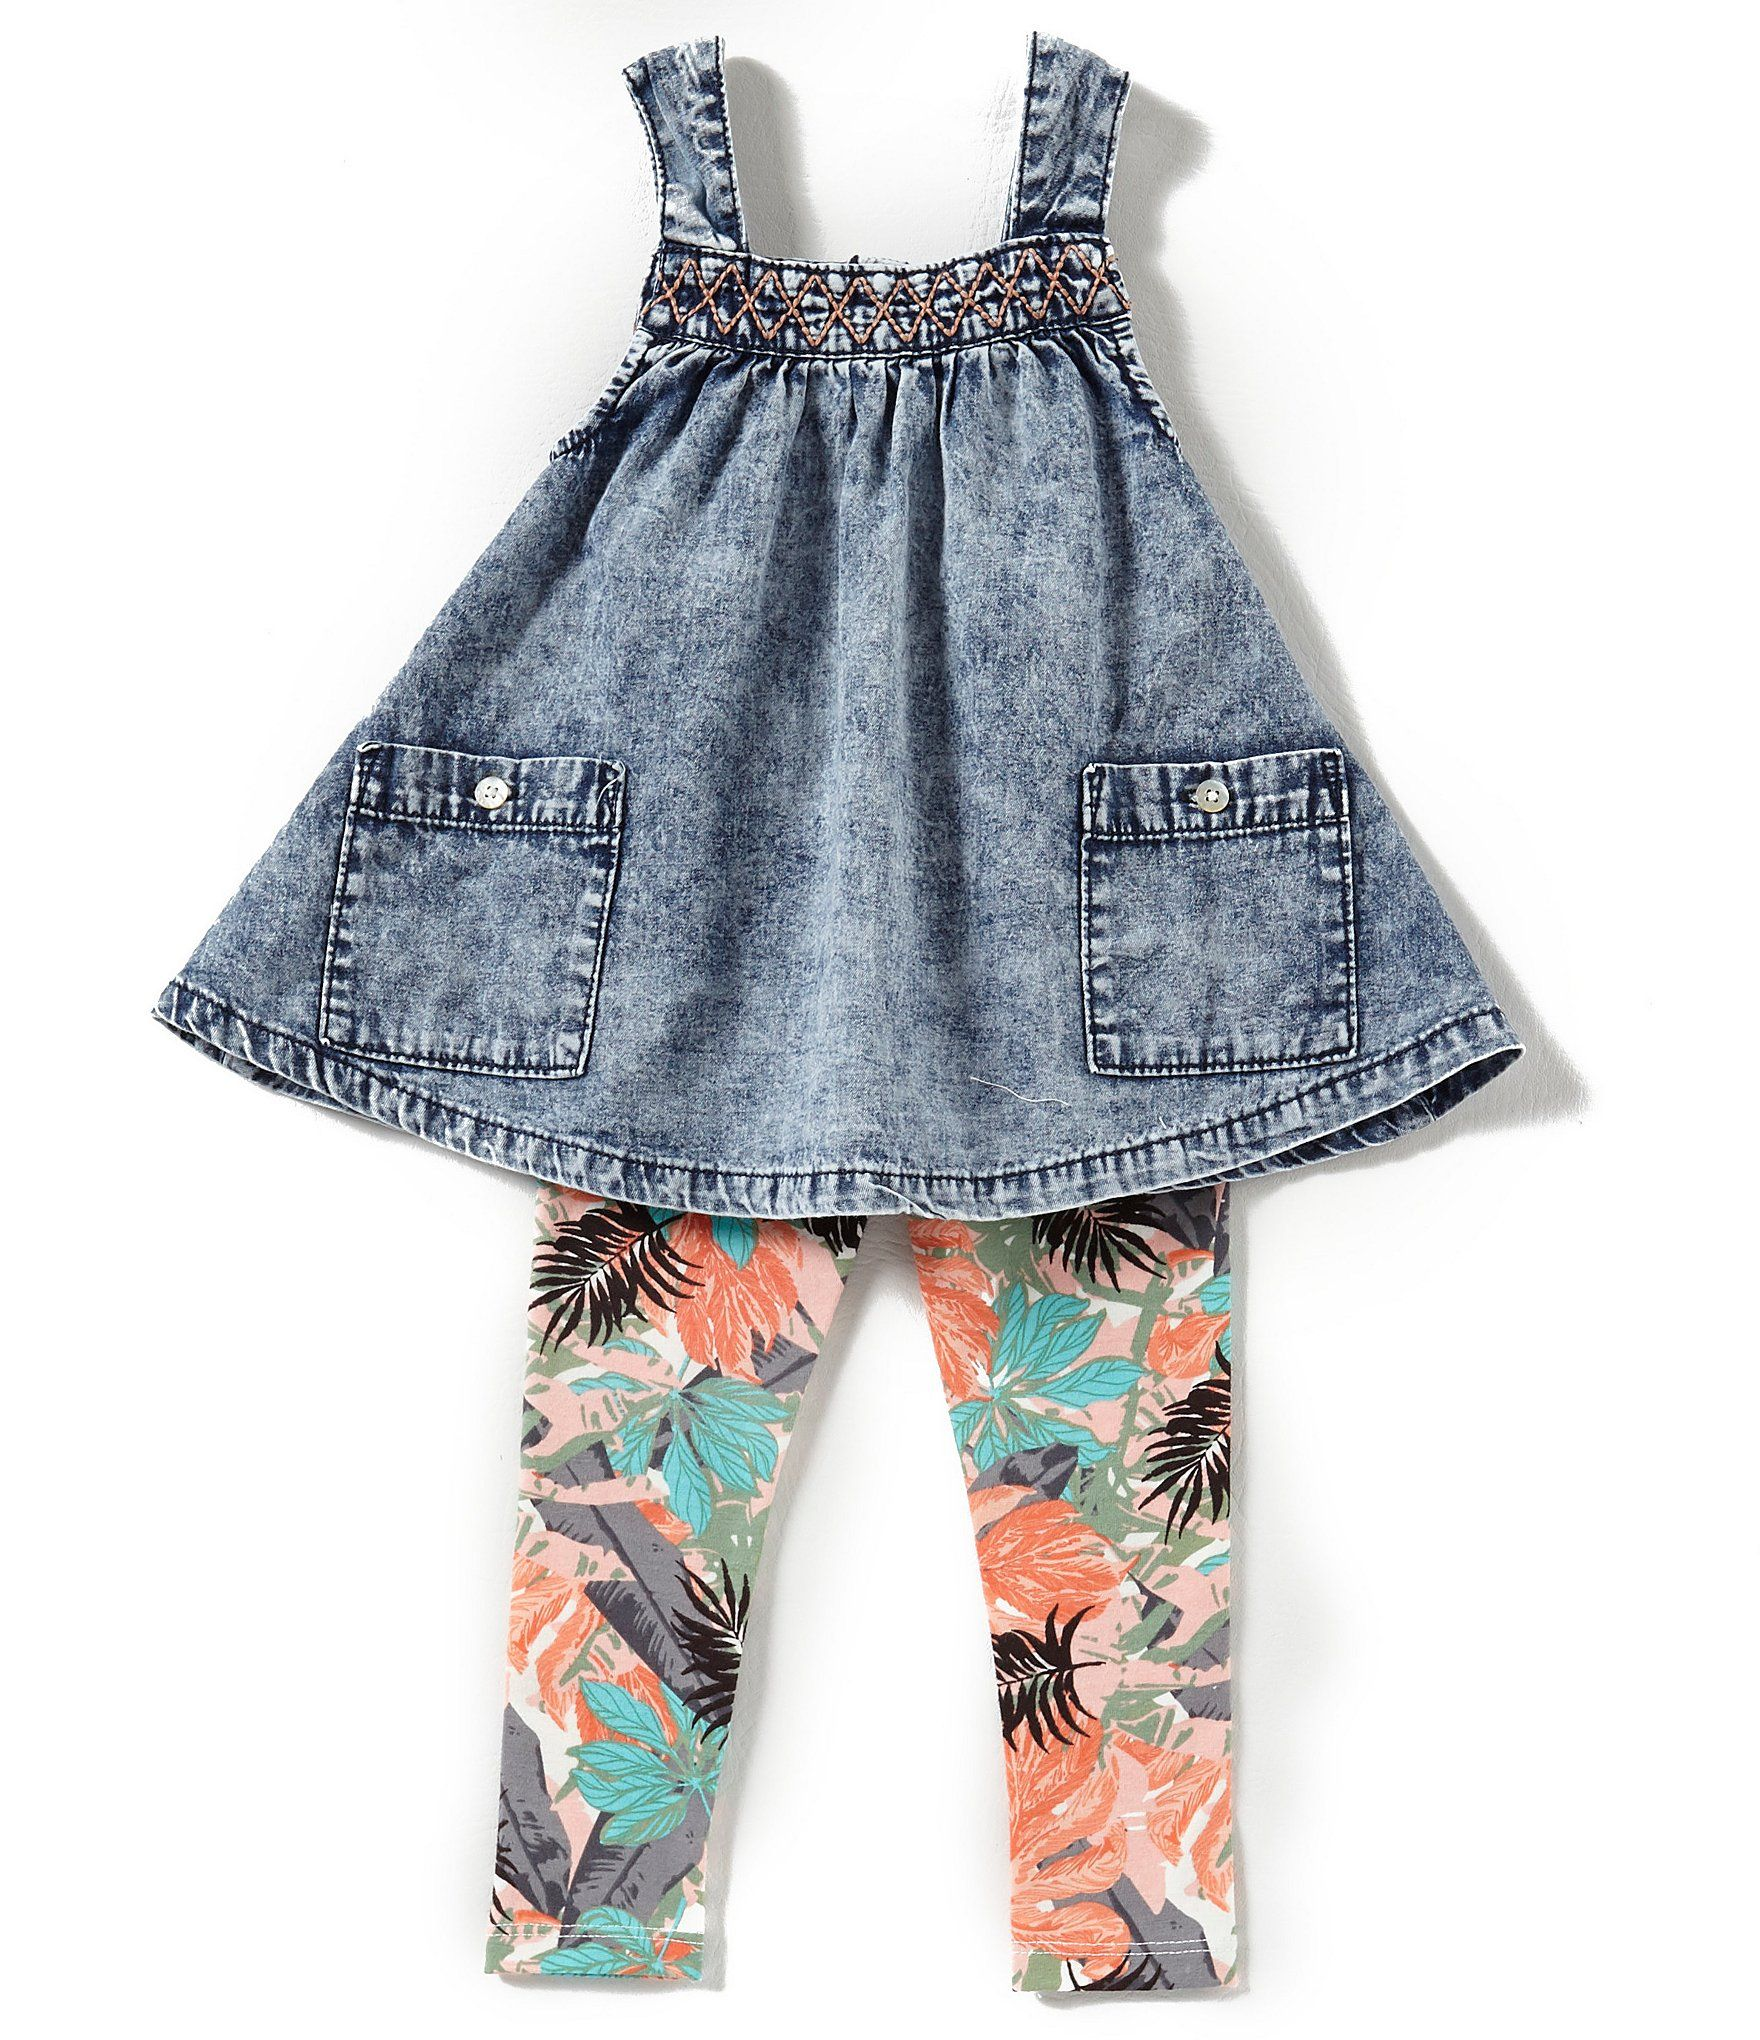 Jessica Simpson Baby Girls 12 24 Months Denim Tank Top & Tropical